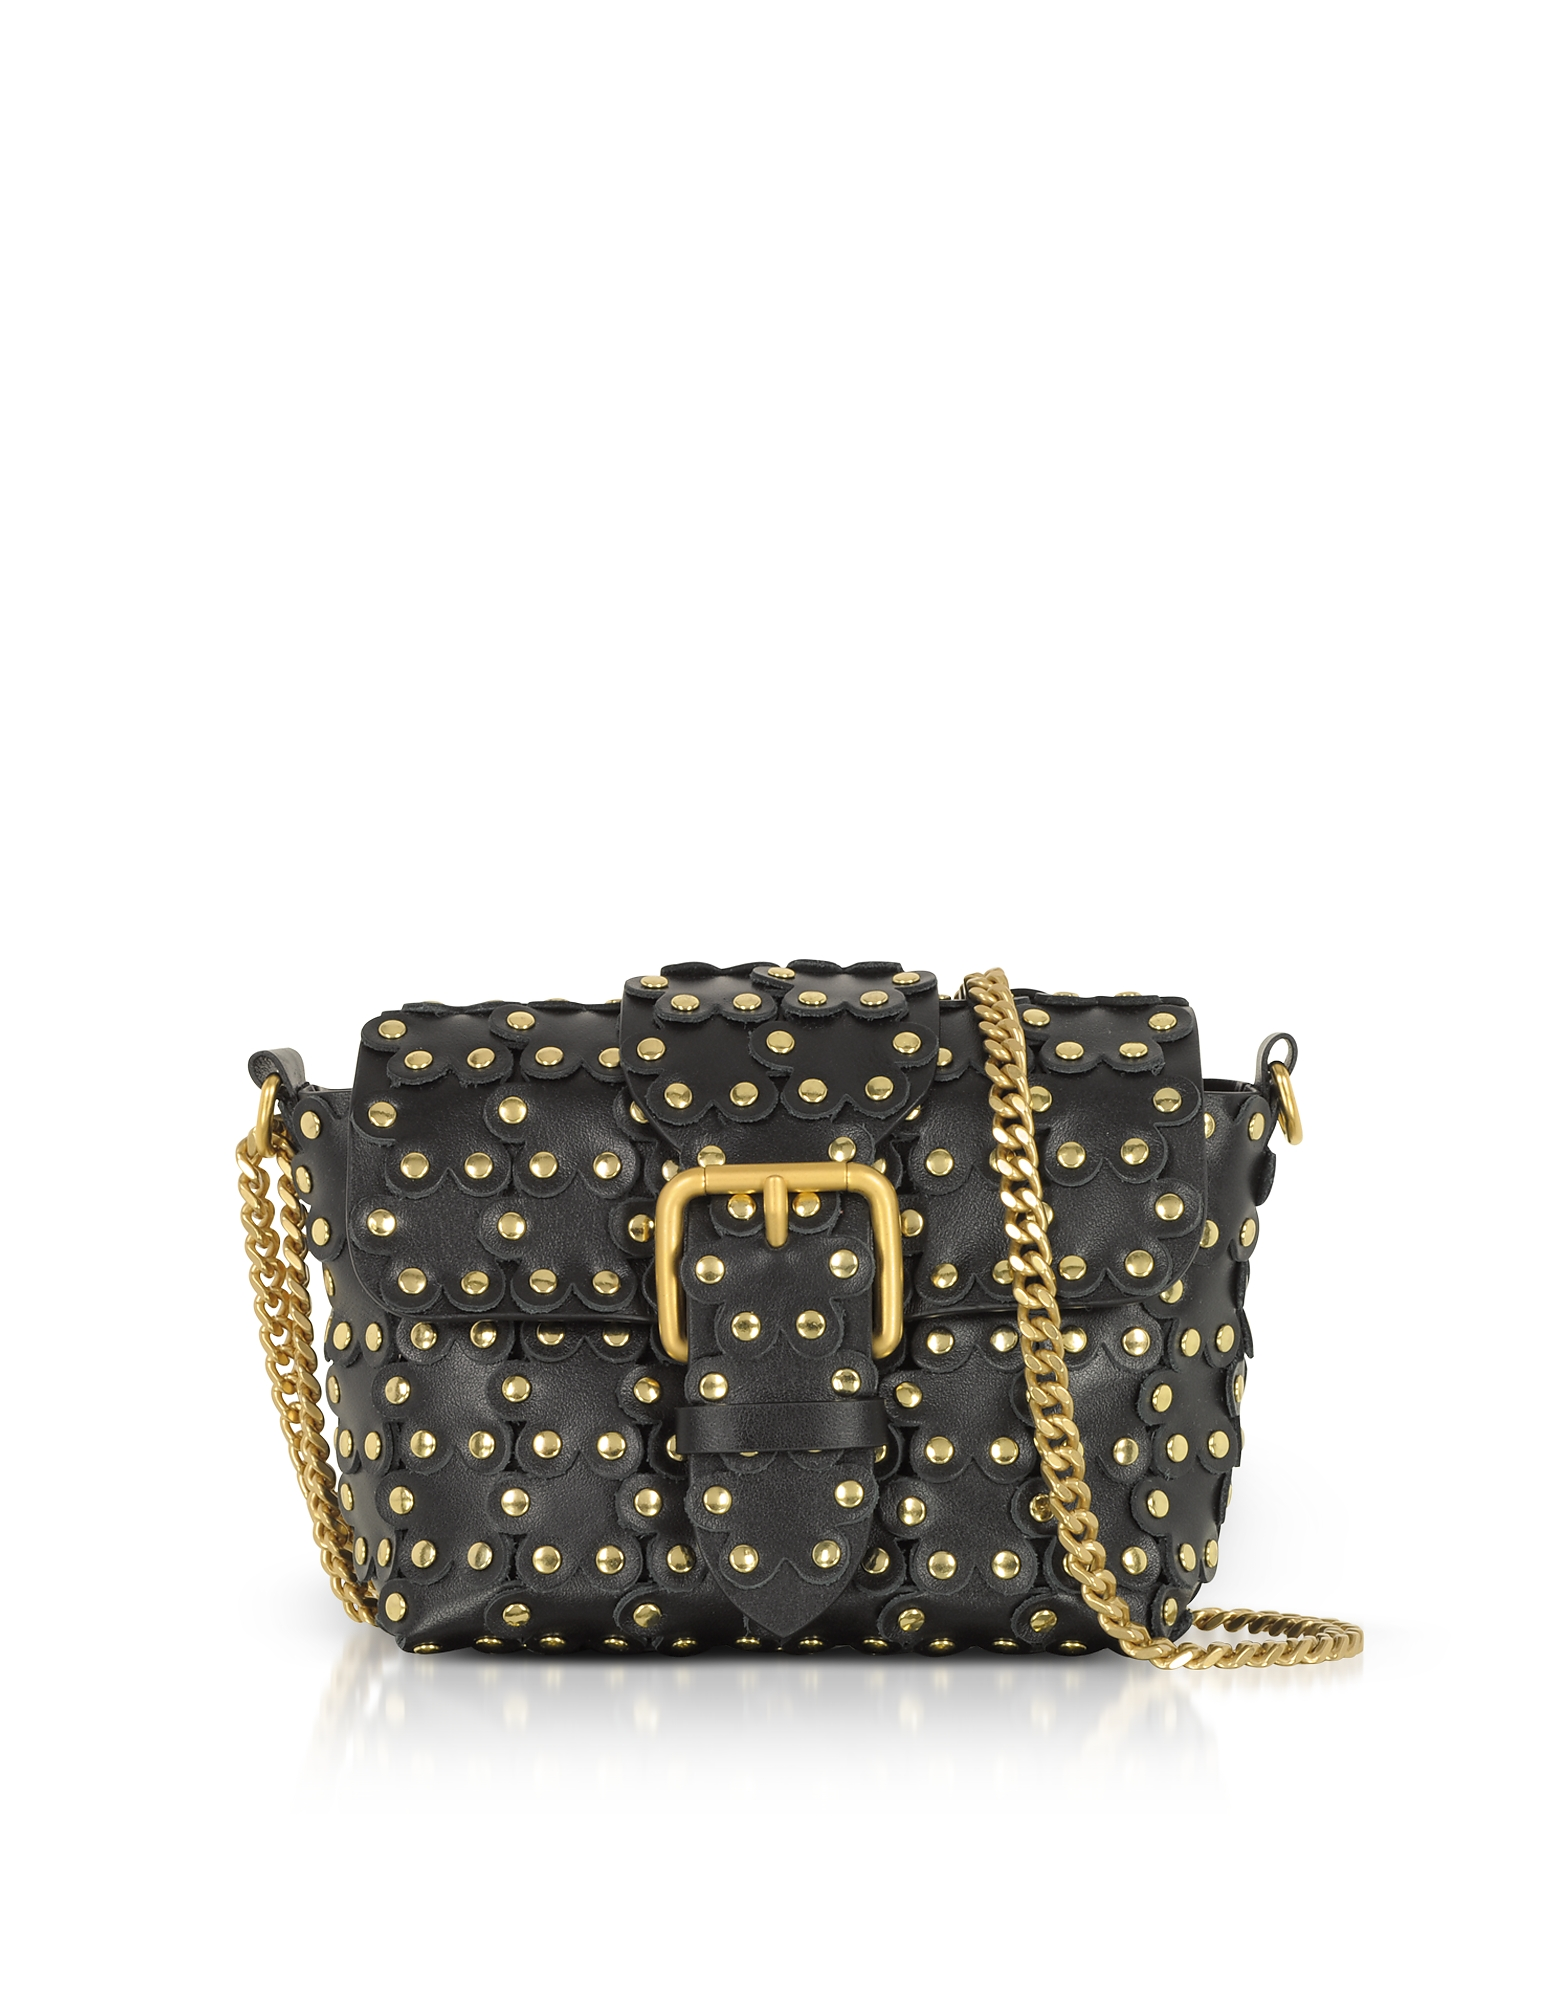 PUZZLE FLOWER CHAIN SHOULDER BAG from FORZIERI